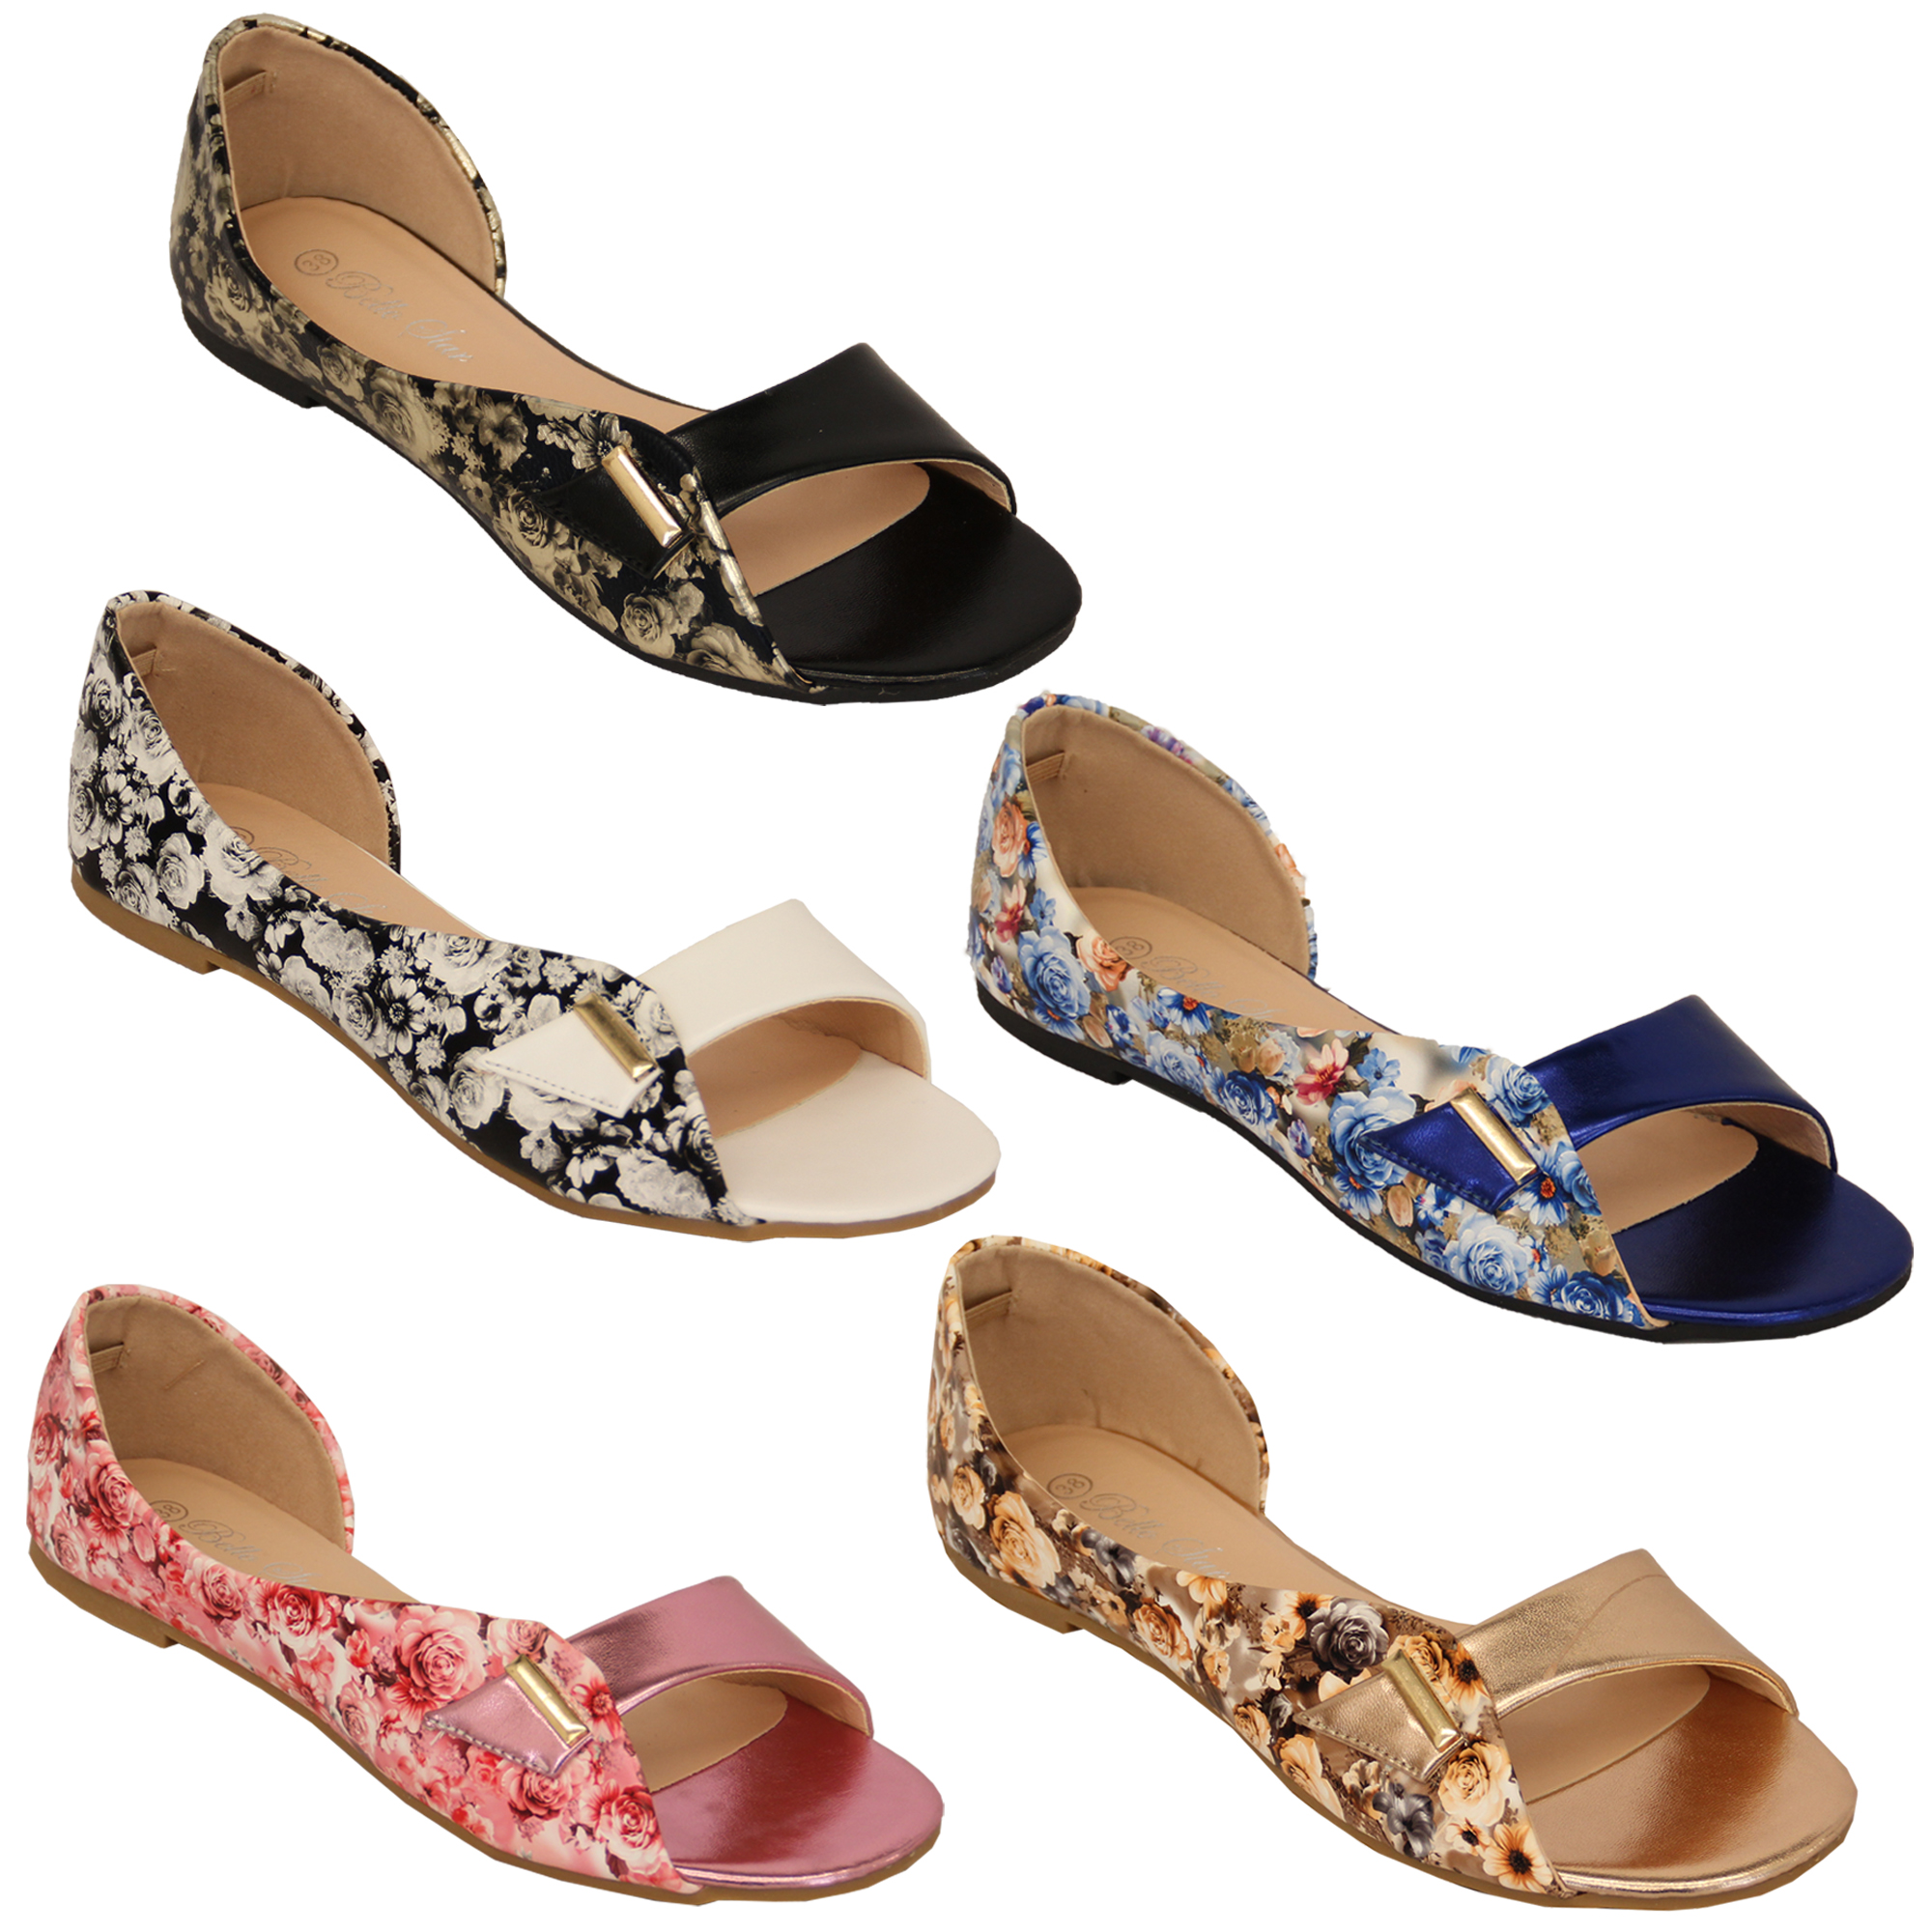 4b0d52bb6 Details about ladies flat sandals floral print womens slip on open toe  bella star casual shoes